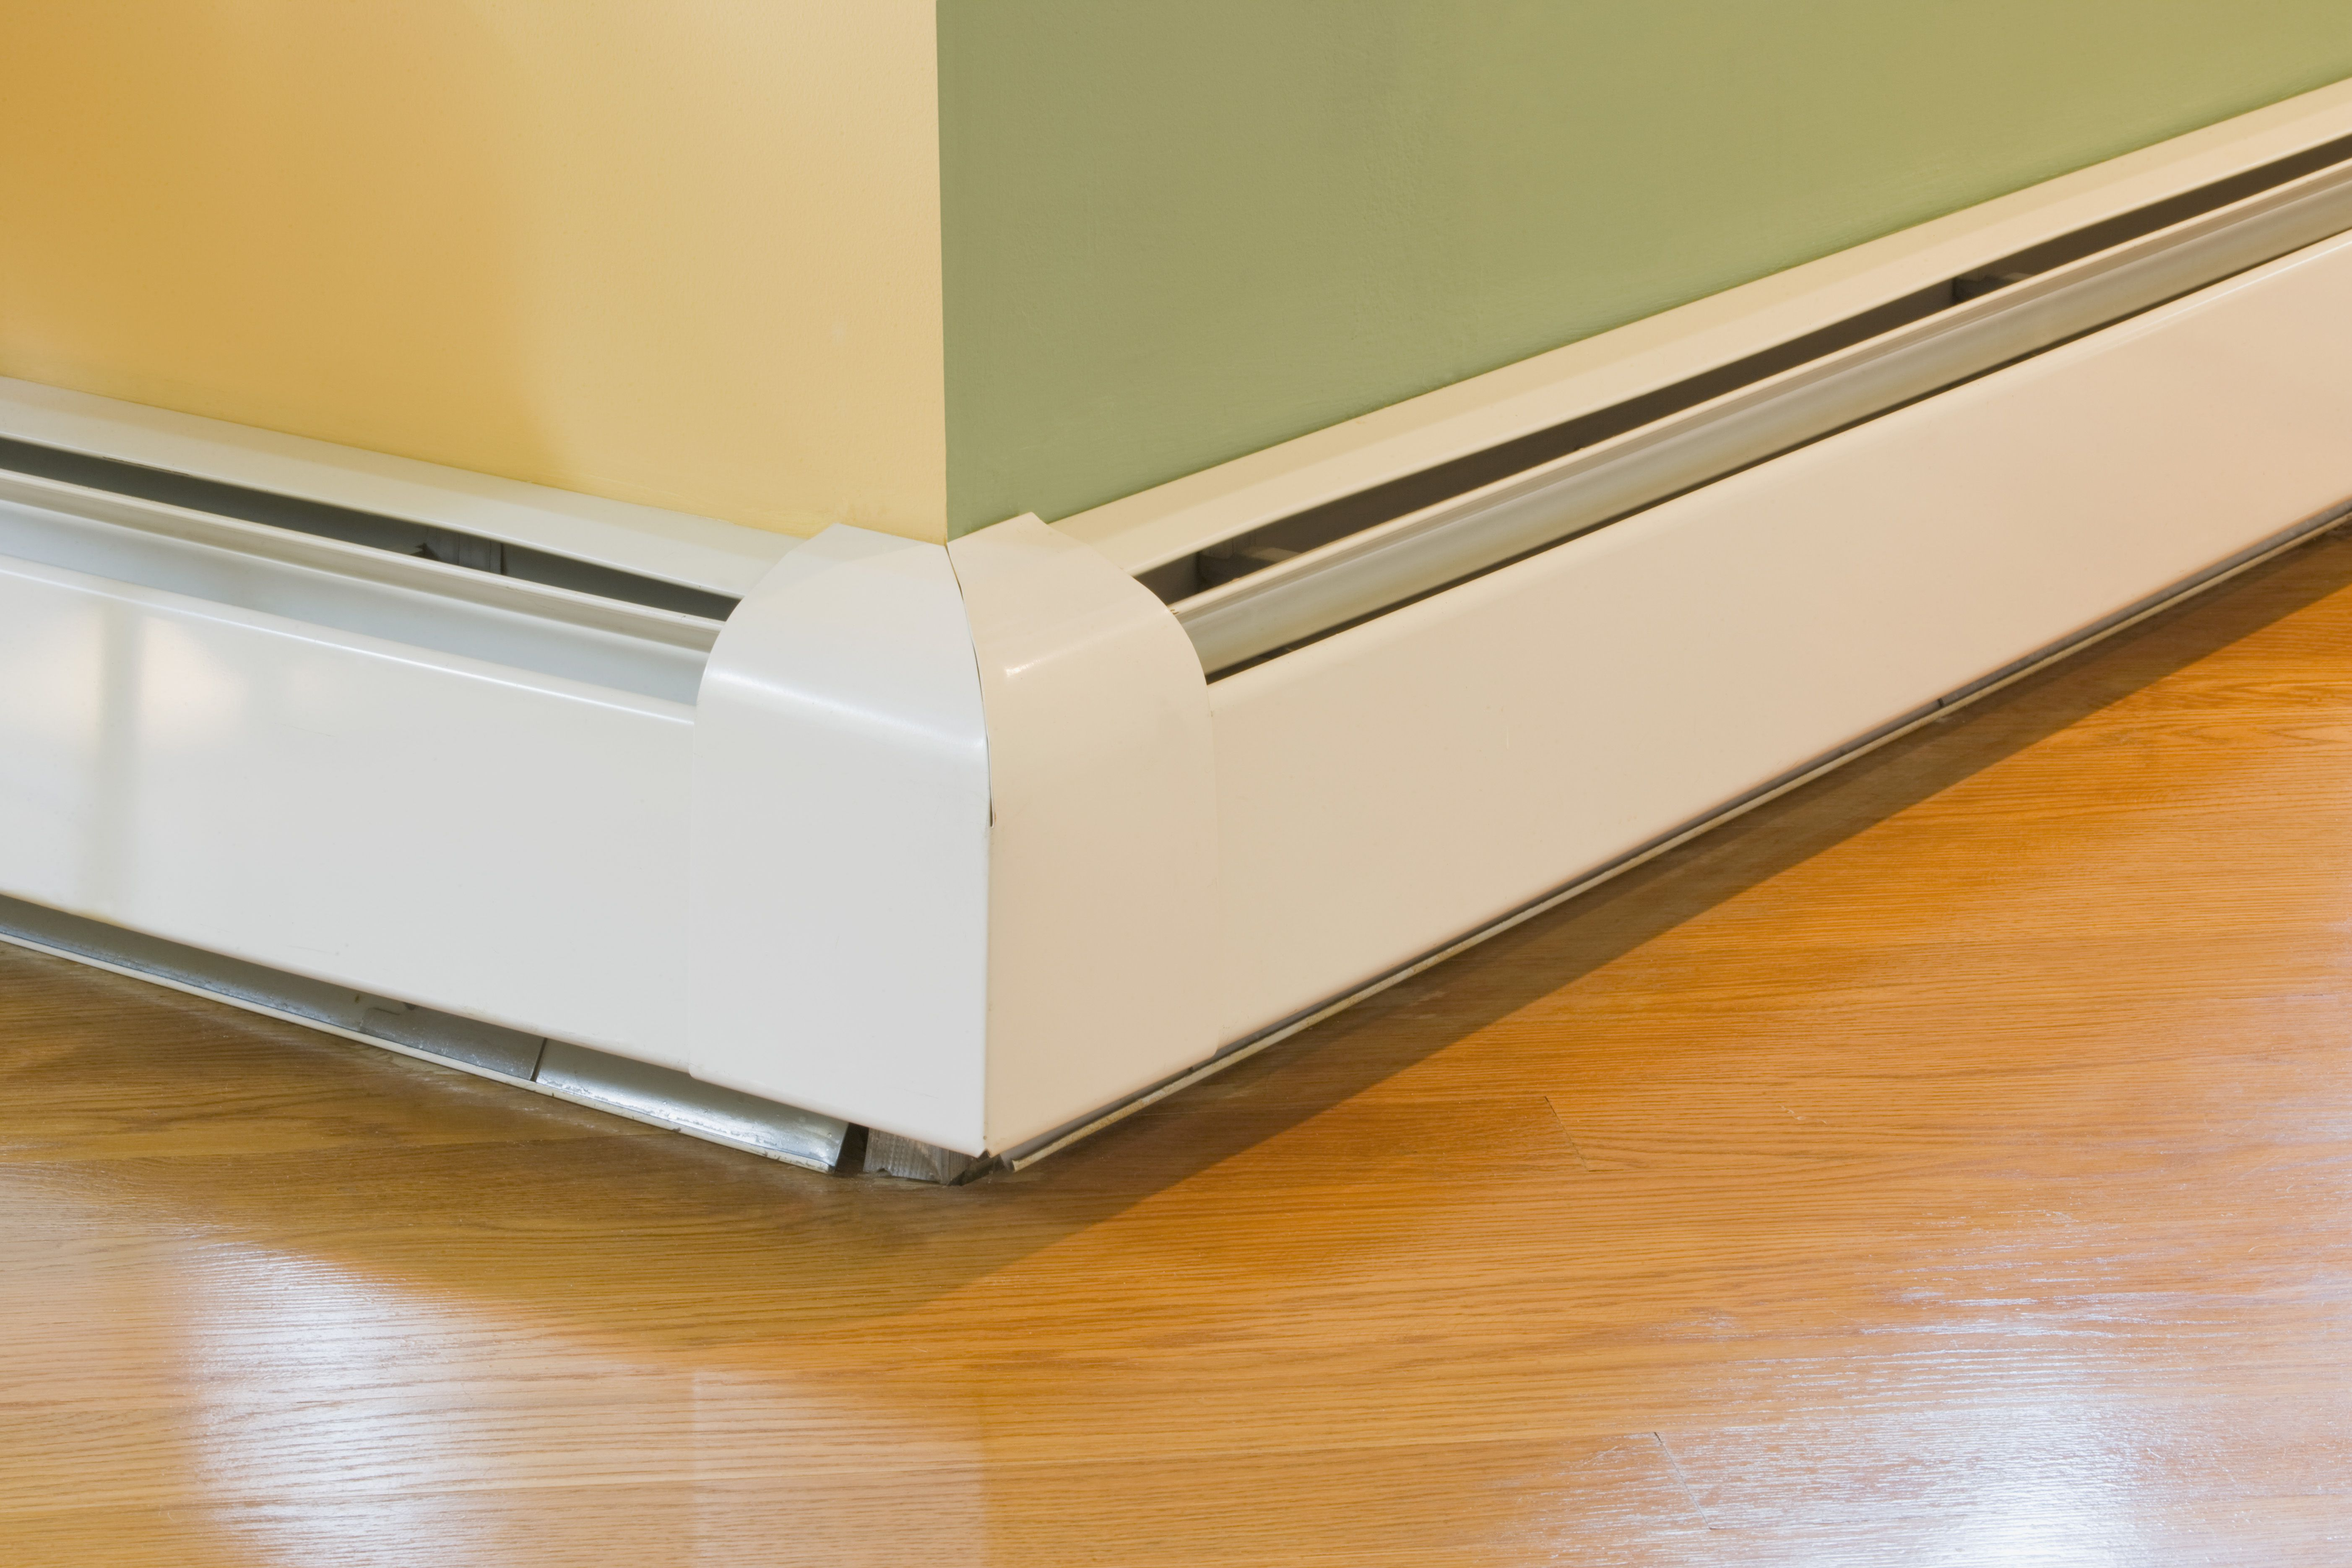 240v electric baseboard heat wiring diagram electrical diy how to install a baseboard heater  how to install a baseboard heater